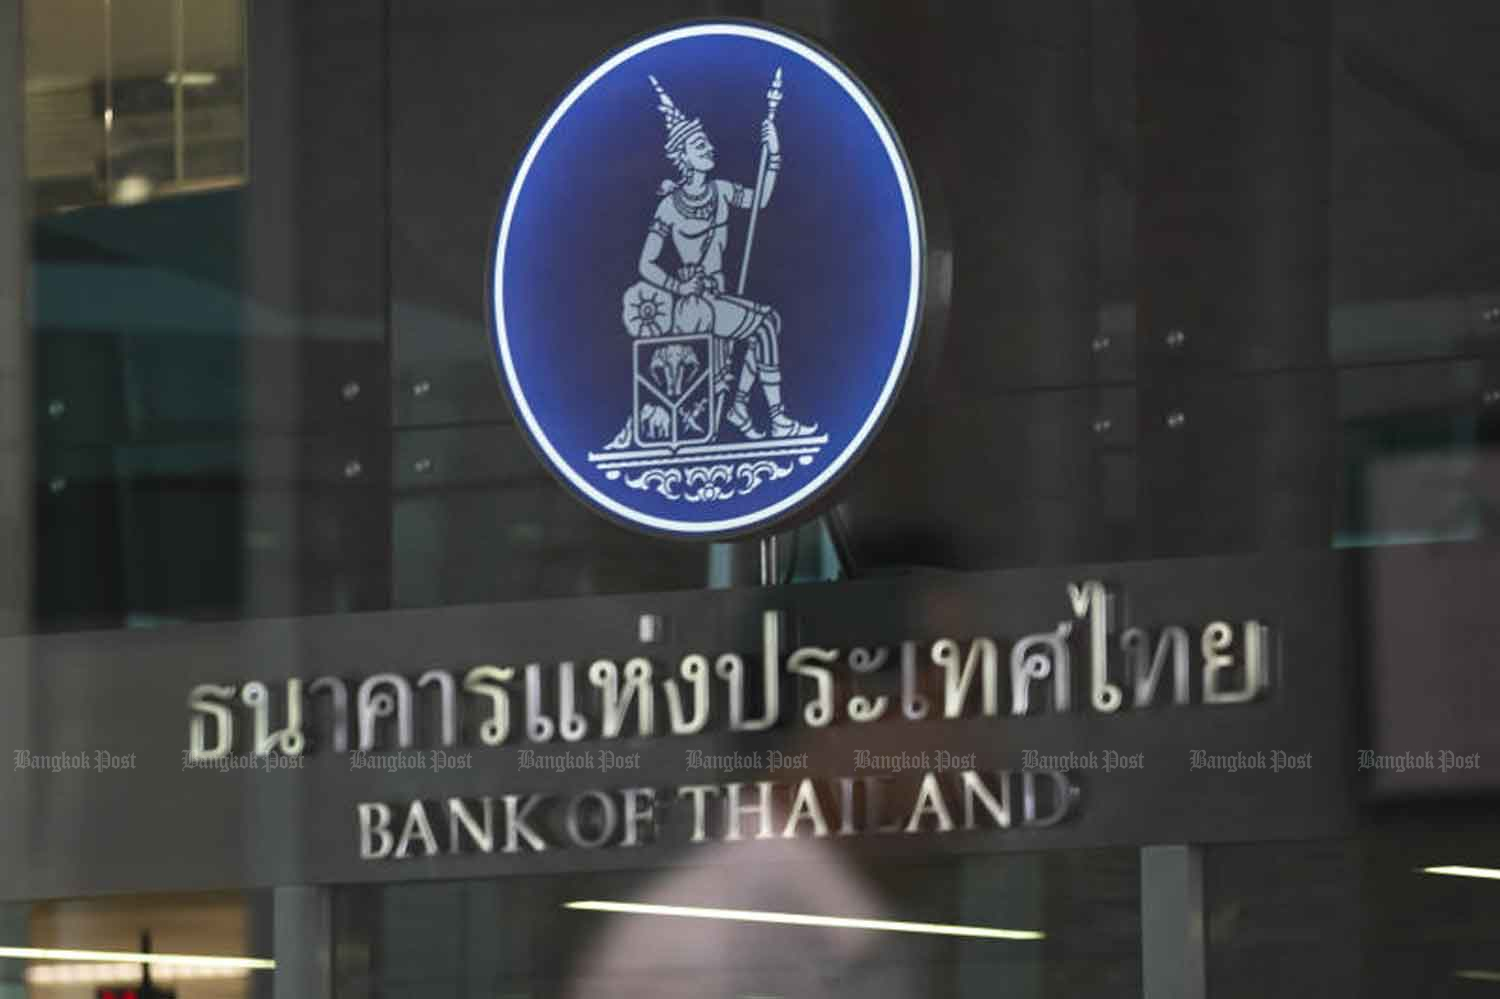 The Bank of Thailand cut its key interest rate by 25 basis points to a record low of 0.75% in a special meeting on Friday, it said in a statement.